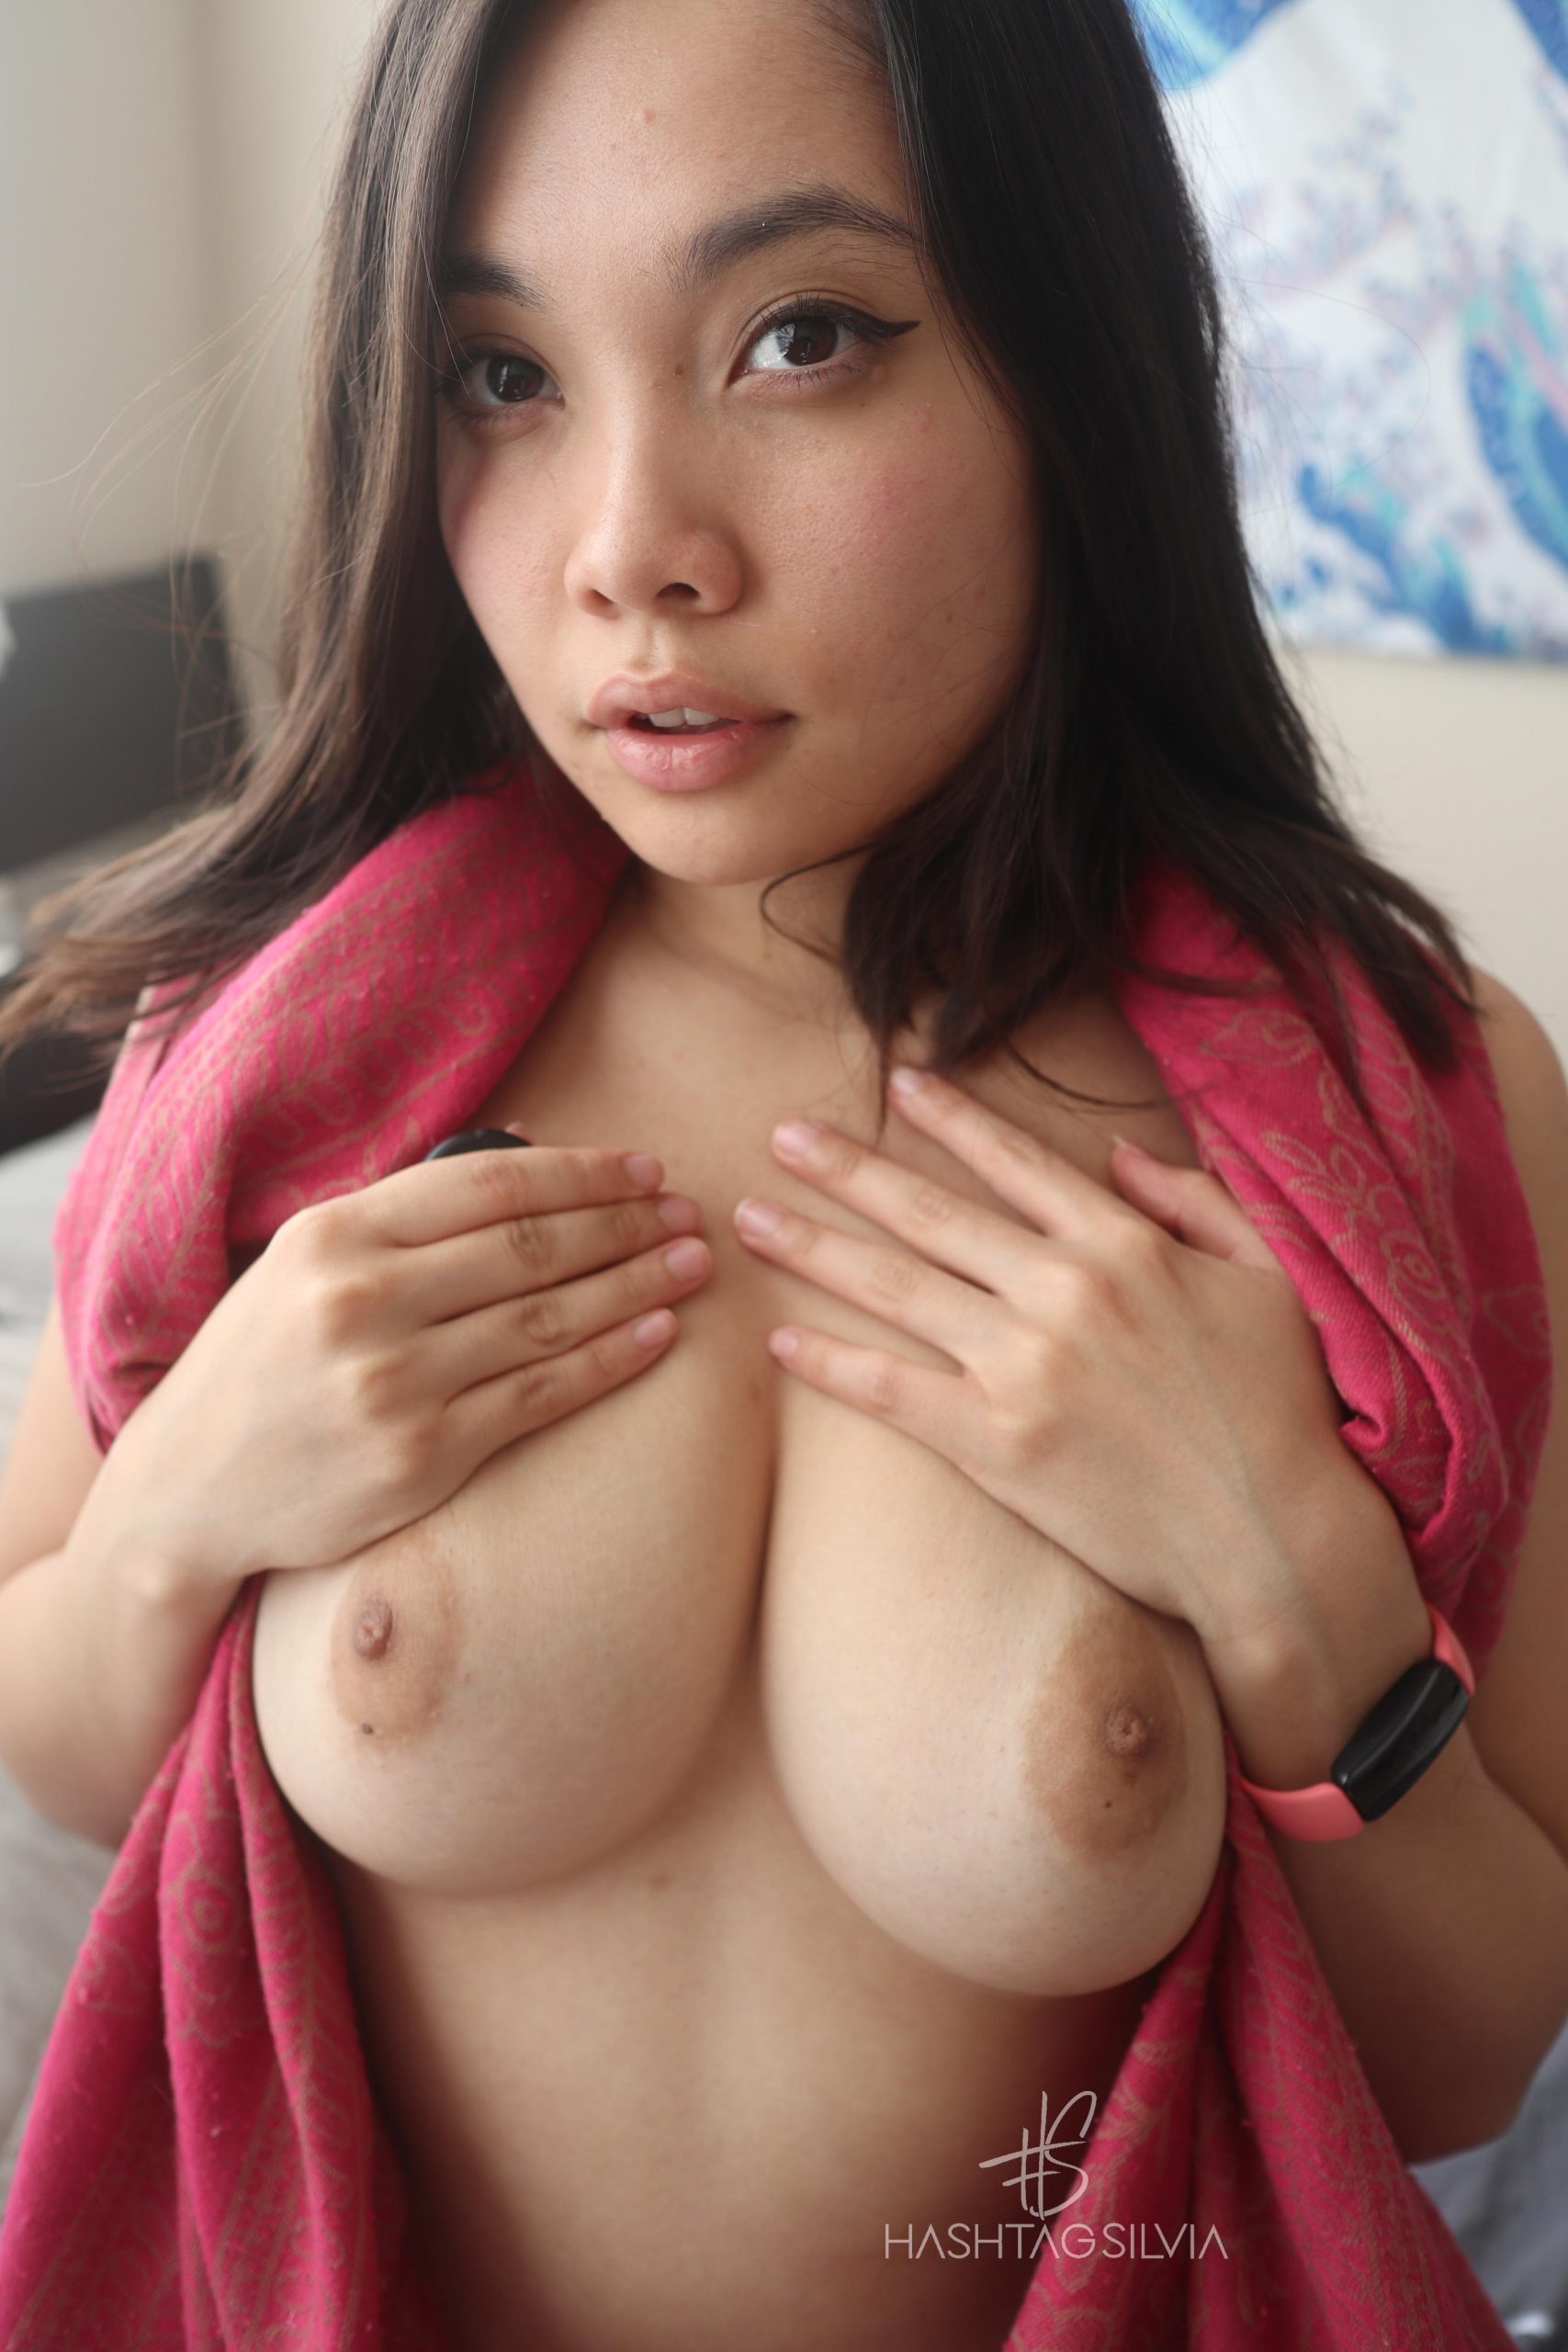 Are these big enough for you?